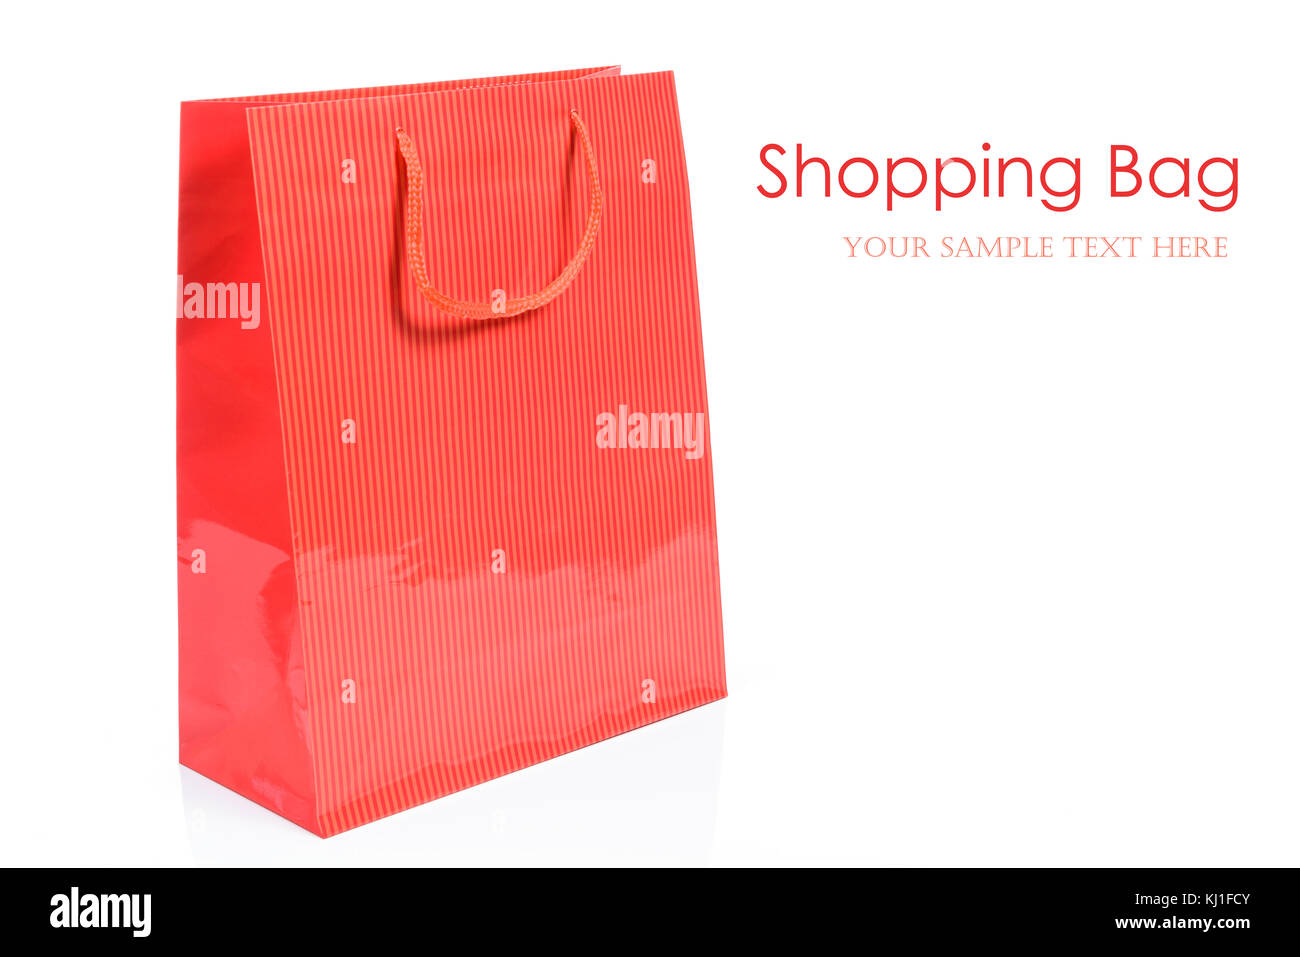 Luxury red shopping bag in close-up and isolated on a white background with copy space place (sample text). - Stock Image